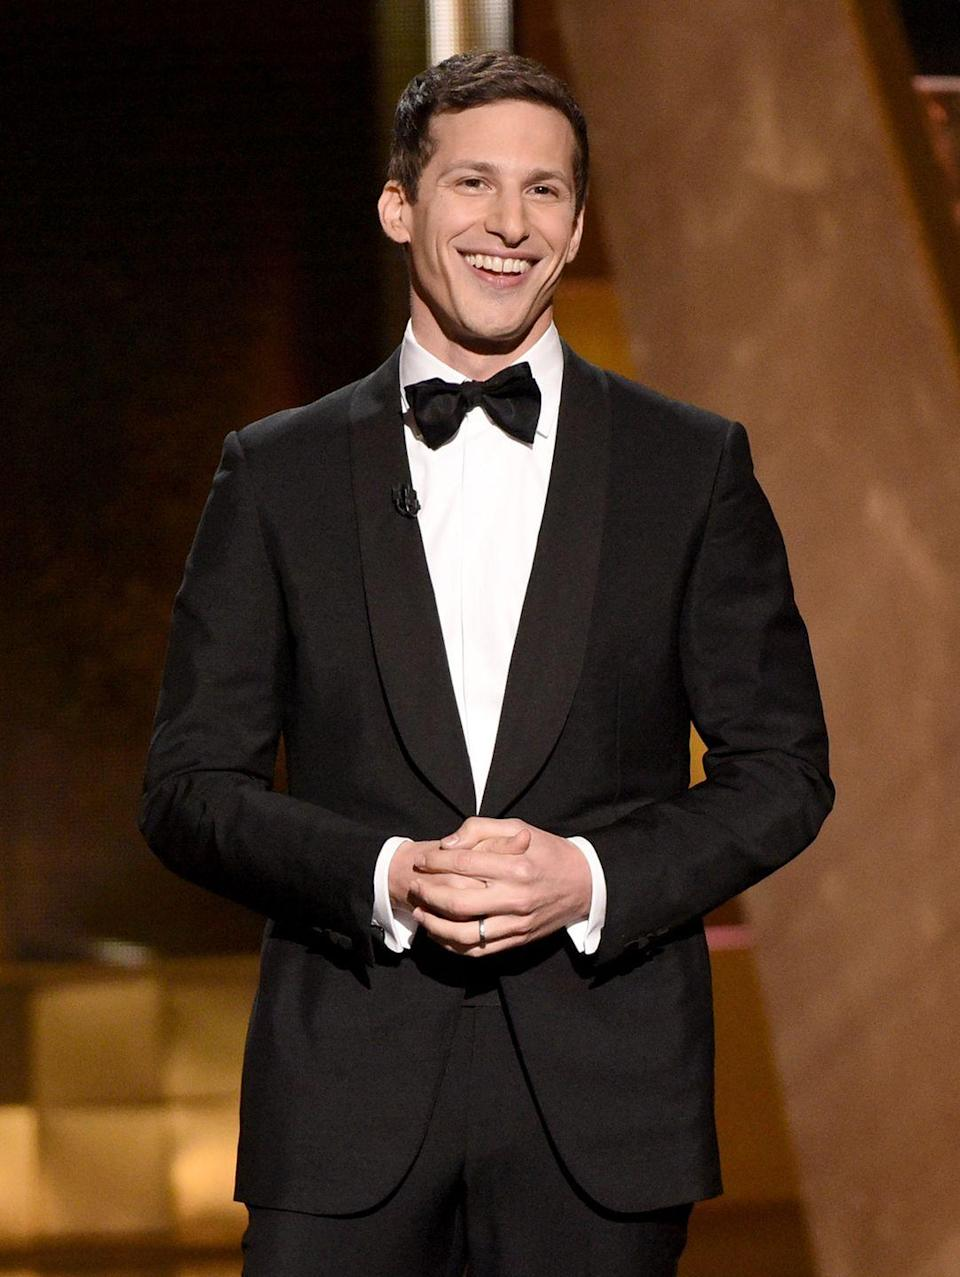 <p>To continue the epic 2015 Emmys, Andy Samberg made some viewers very happy. While he was telling everyone to watch <em>Game of Thrones</em>, he ended up giving out his HBO Go login info to everyone watching—and the credentials were legit. While they only worked for a little while, but it was still amusing. </p>